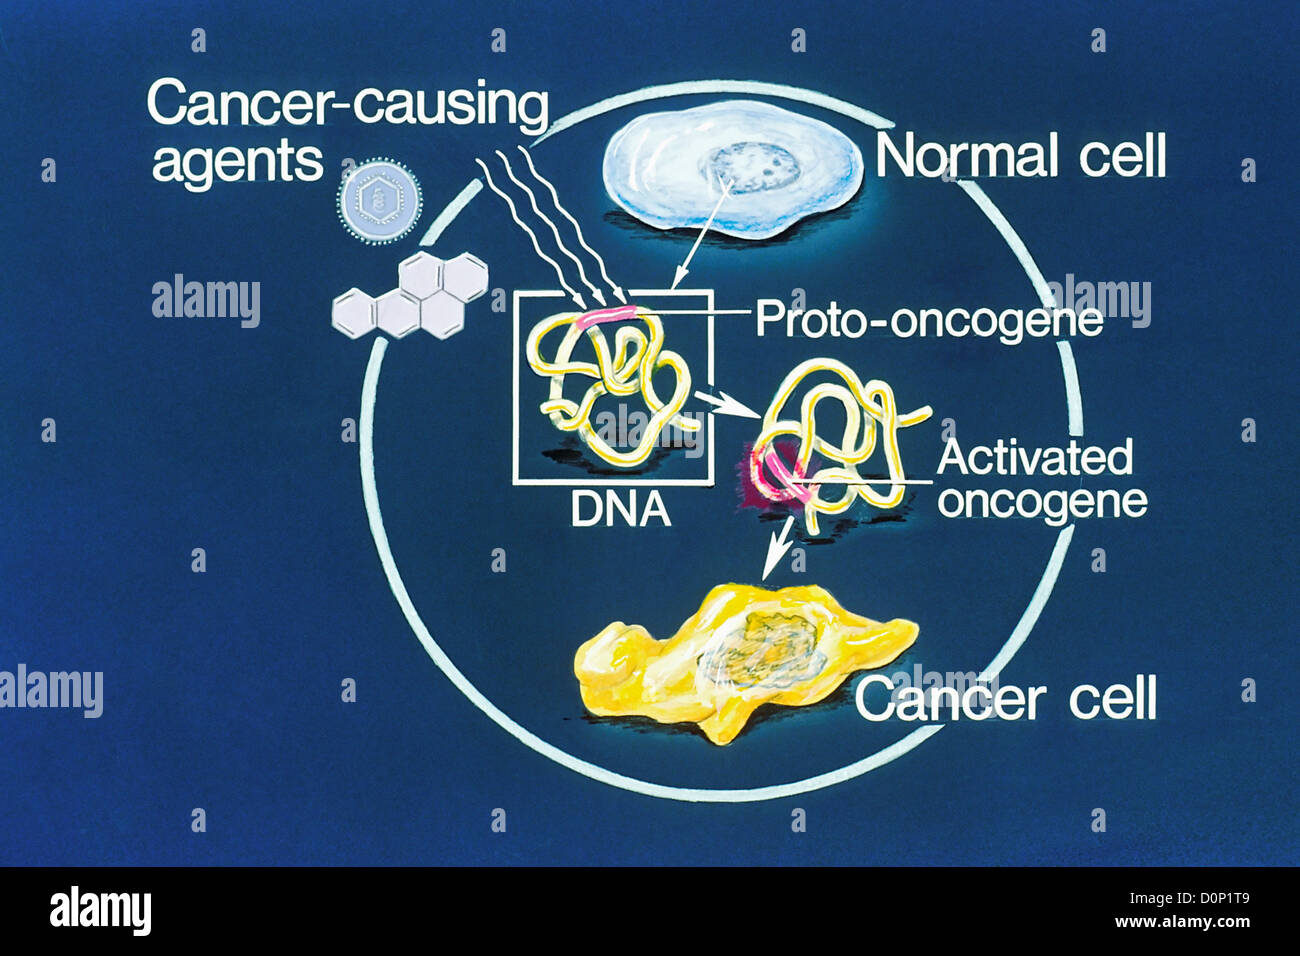 This illustration explains how normal cell becomes cancer cell. oncogene in normal cell appears regulate influence - Stock Image